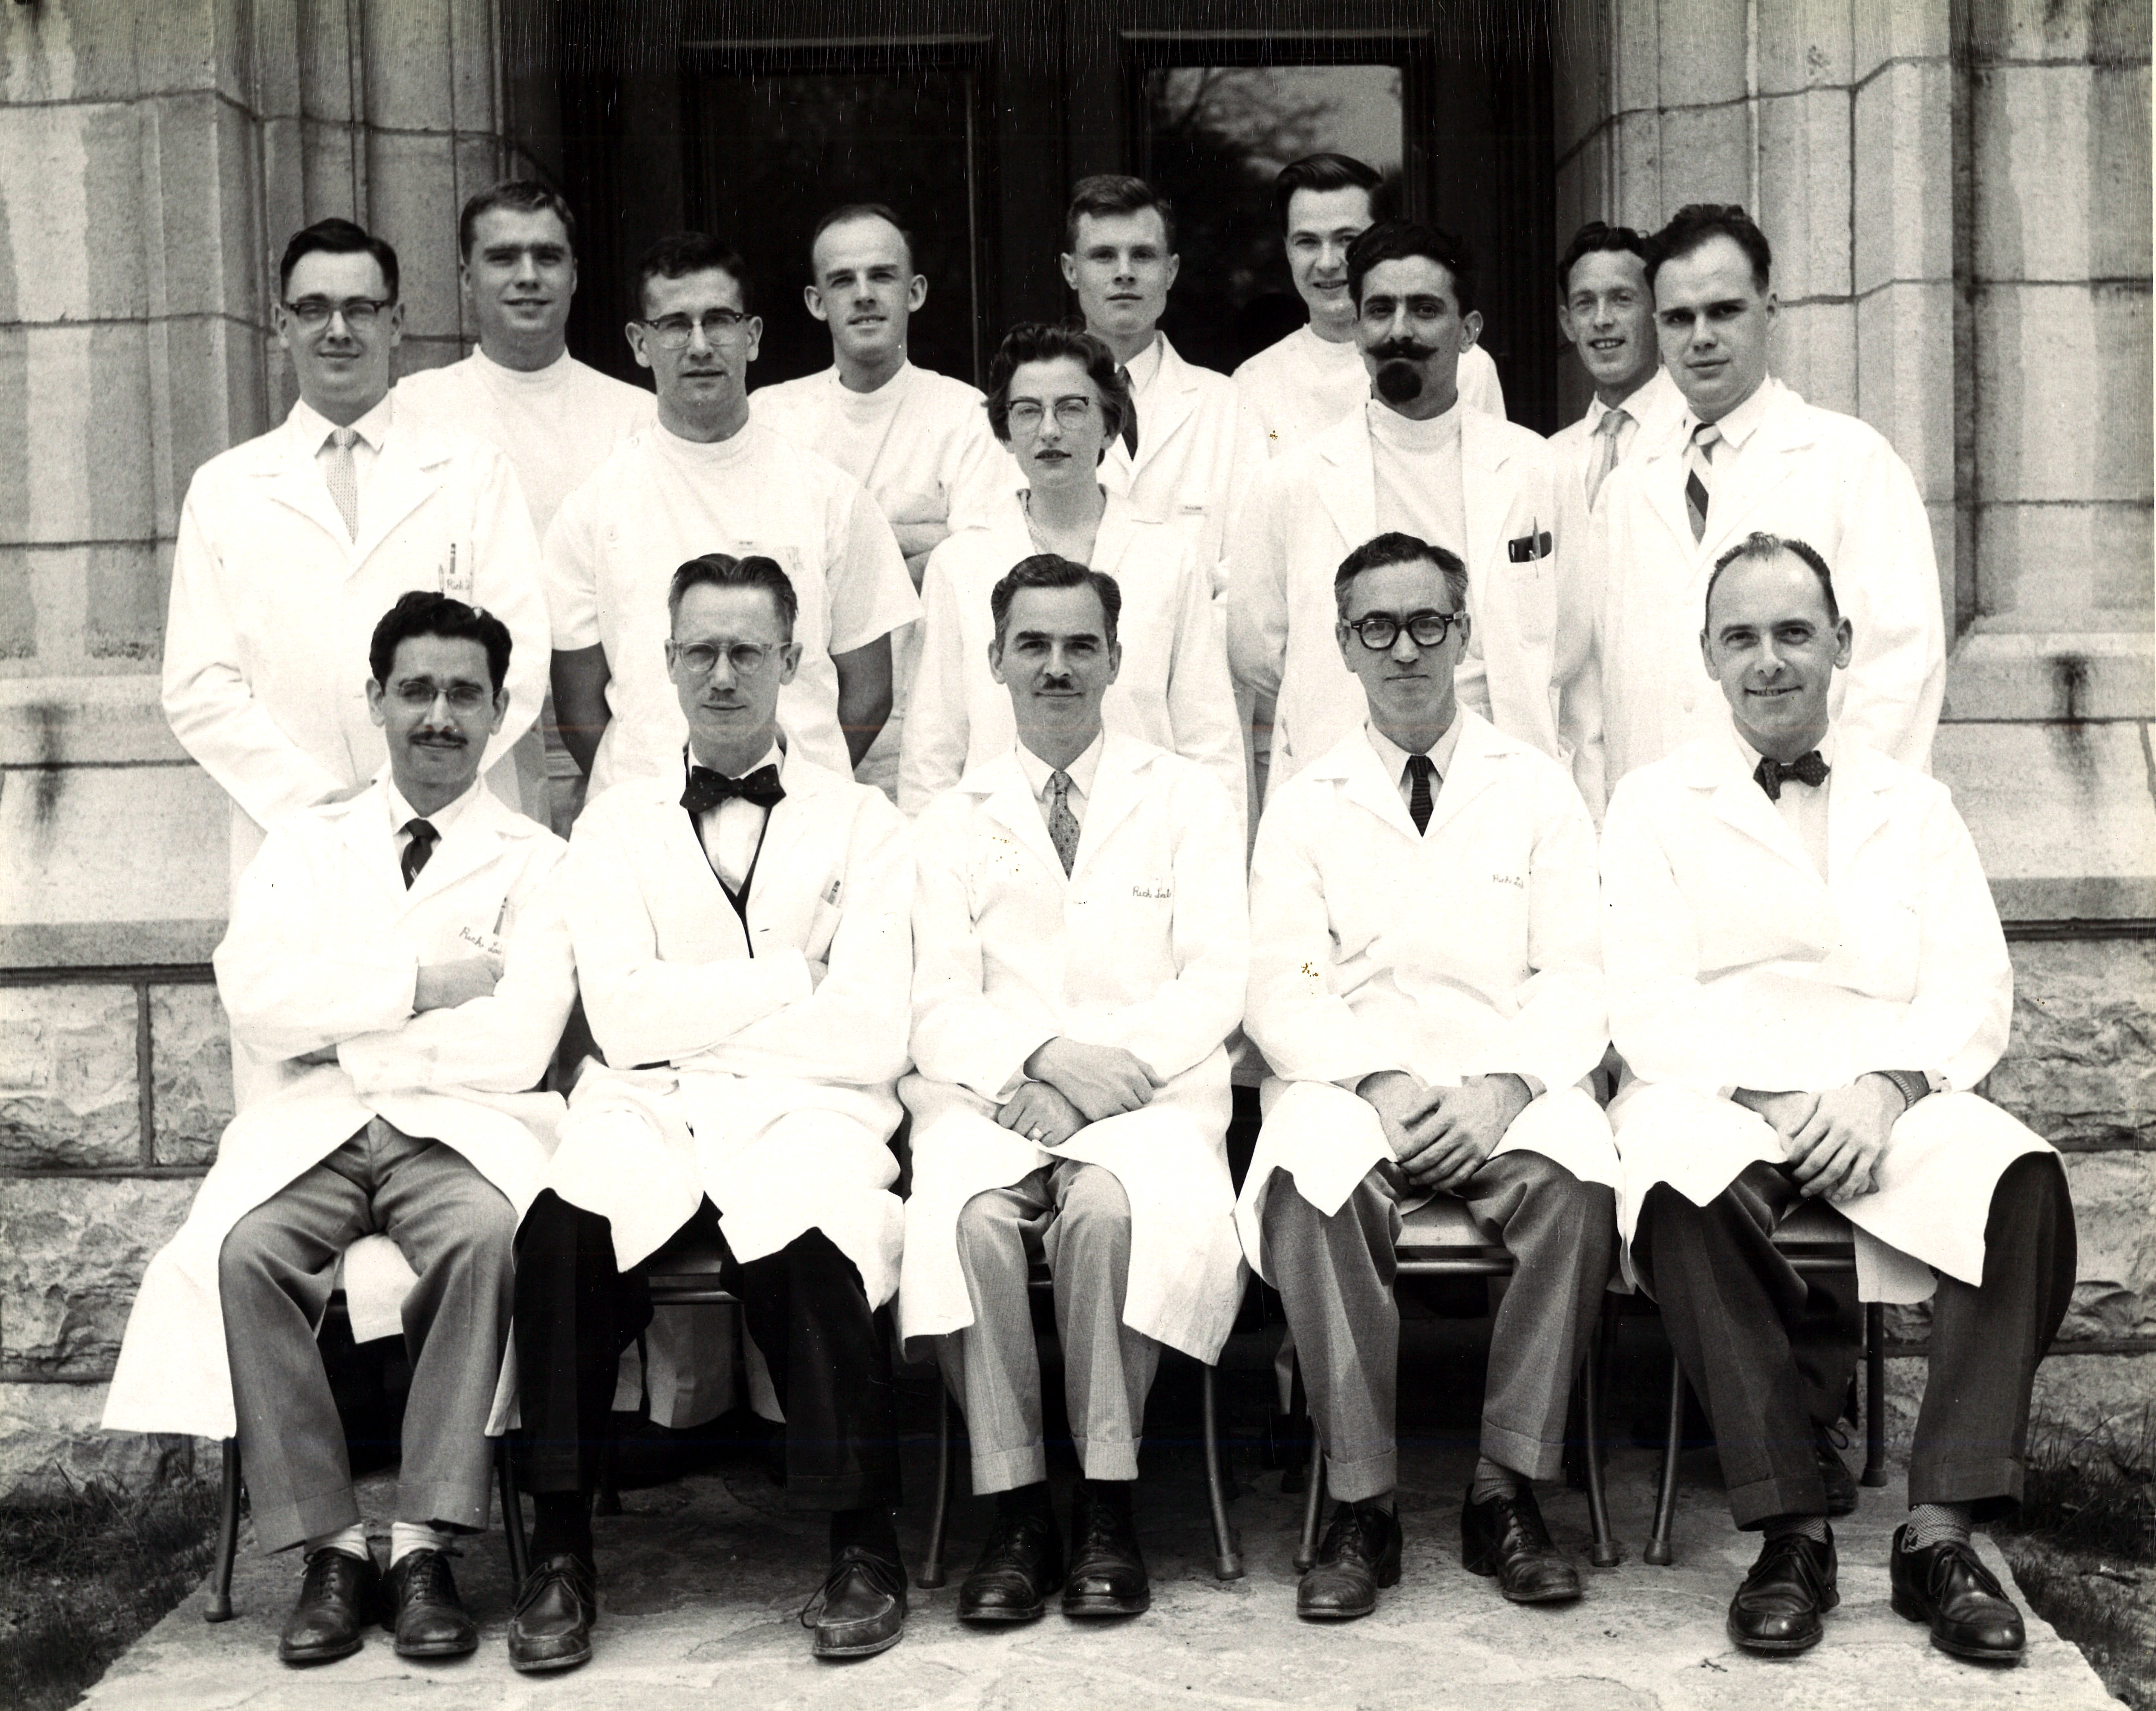 1960 Faculty Group Photo